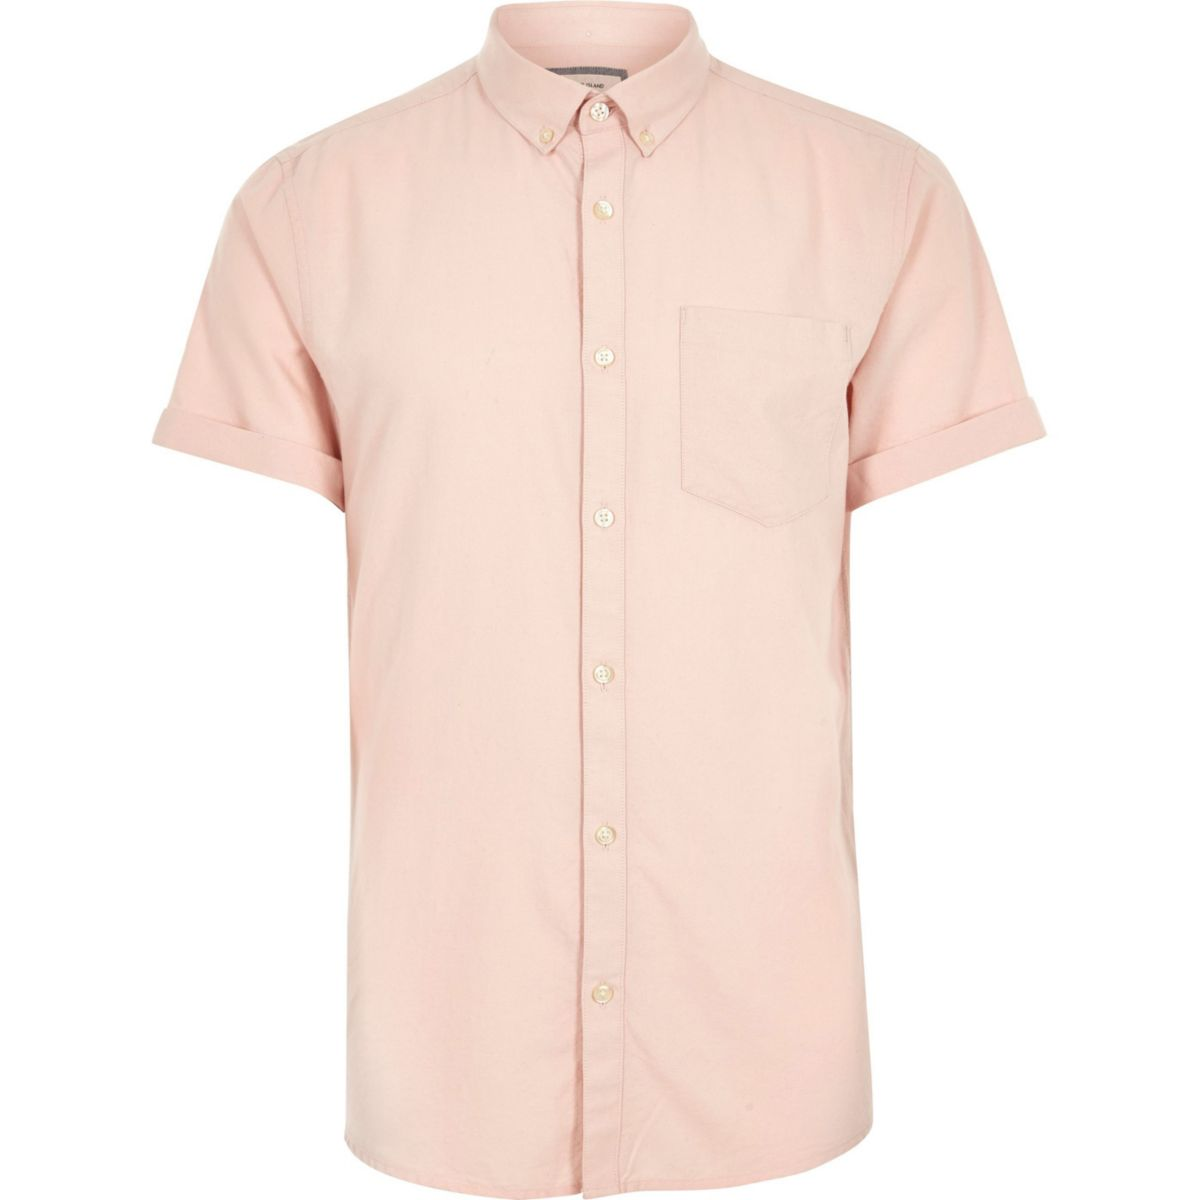 Chemise Oxford Big & Tall rose à manches courtes